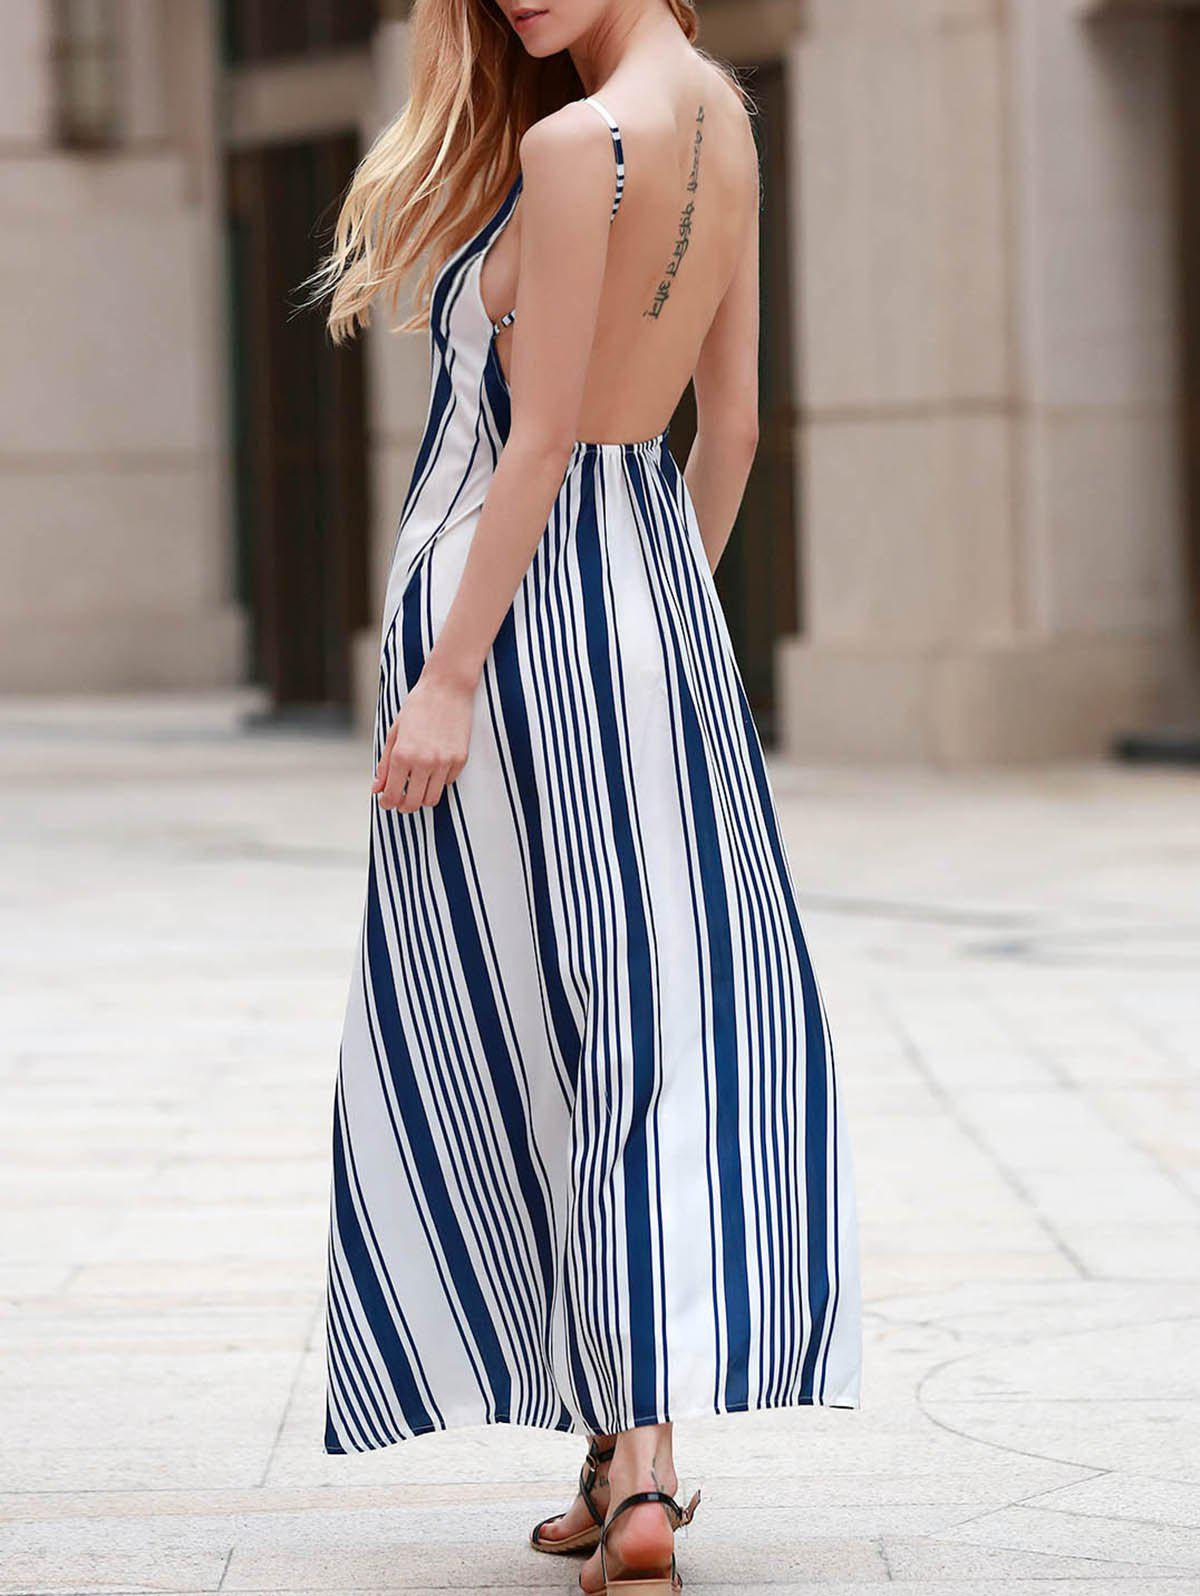 Sexy Strappy Striped Open Back Maxi Dress Women S